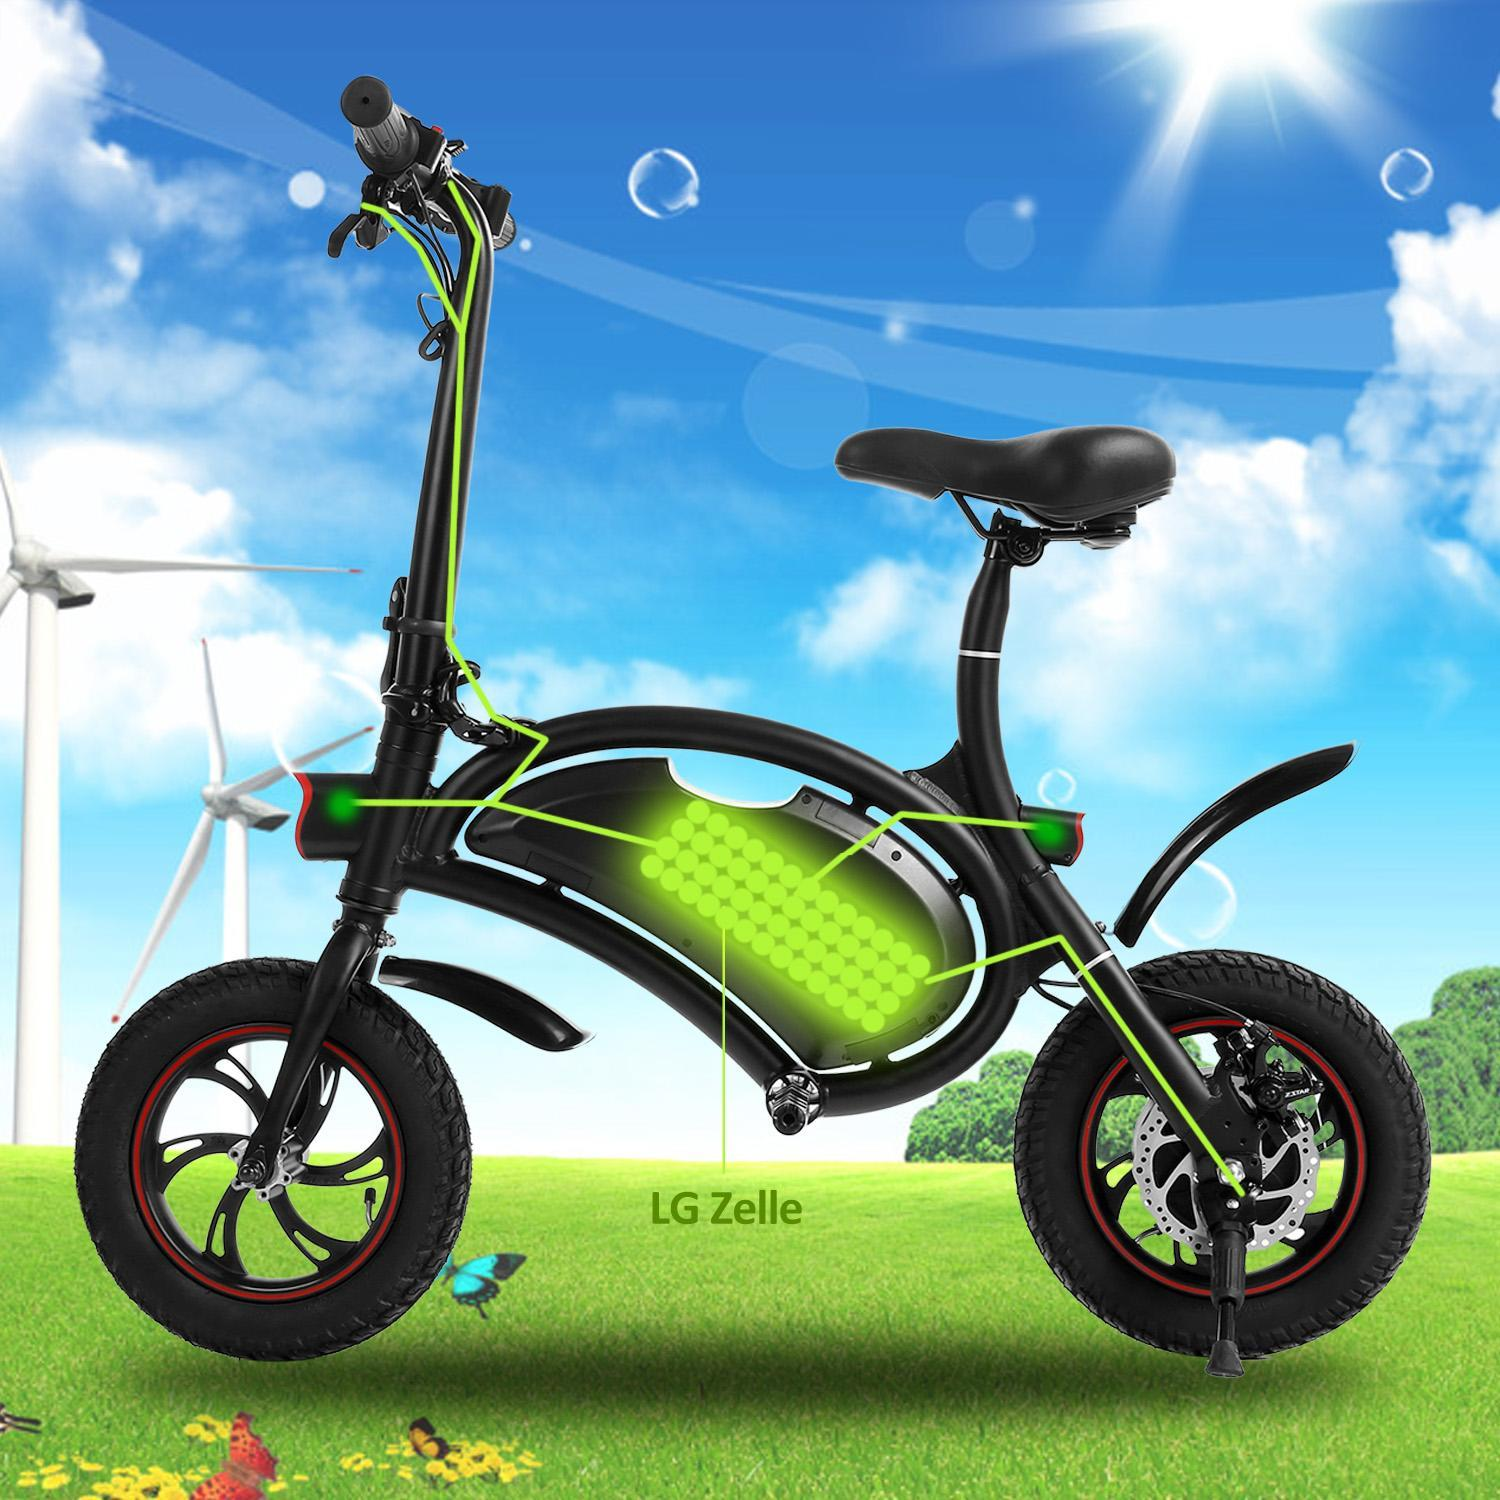 Wishmall 11.8 inch Aluminum Folding Electric Bike Portable Electric Bicycle 20KM Range